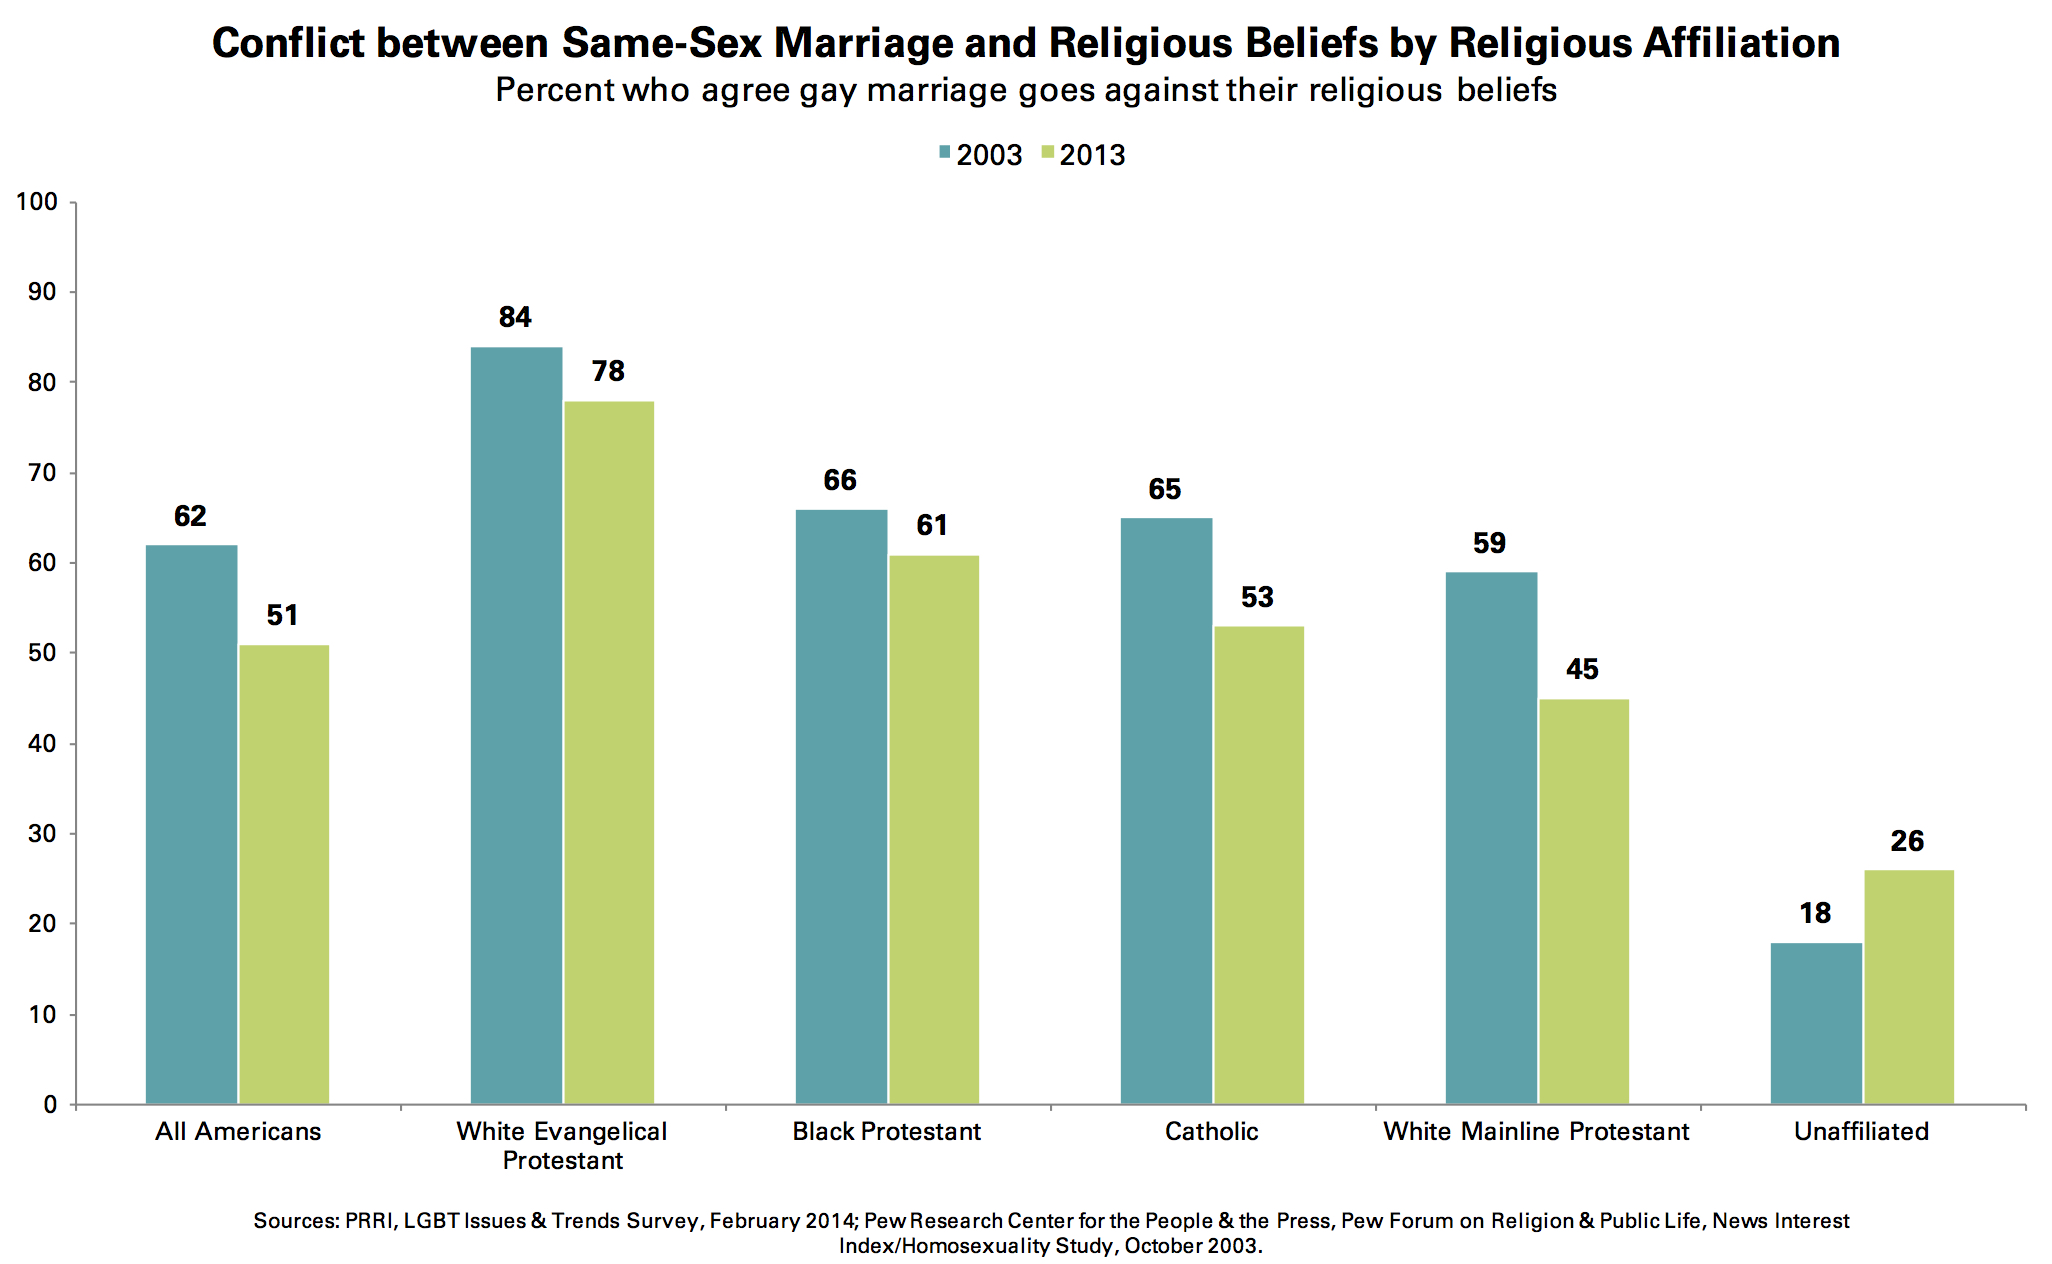 Support for Same-Sex Marriage at Record High, but Key Segments Remain Opposed